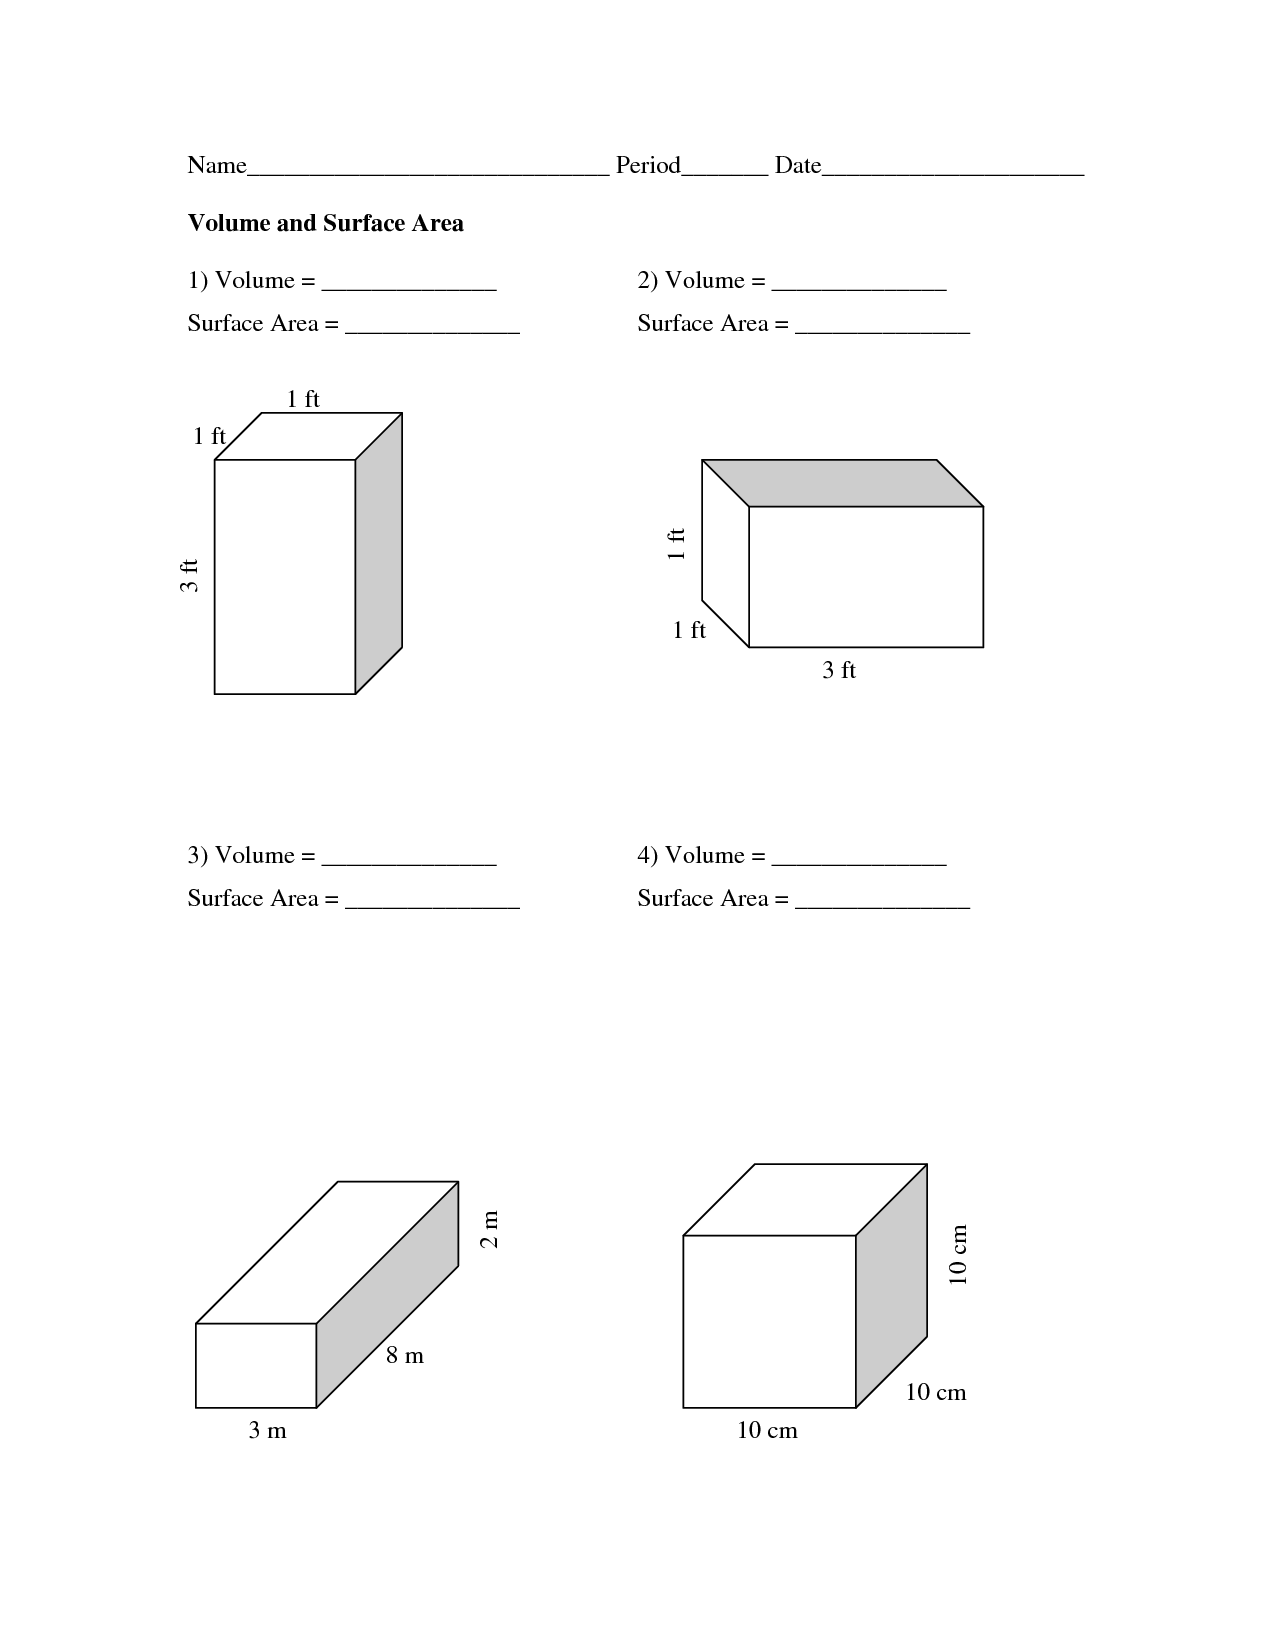 worksheet. Surface Area Of Cylinder Worksheet. Worksheet